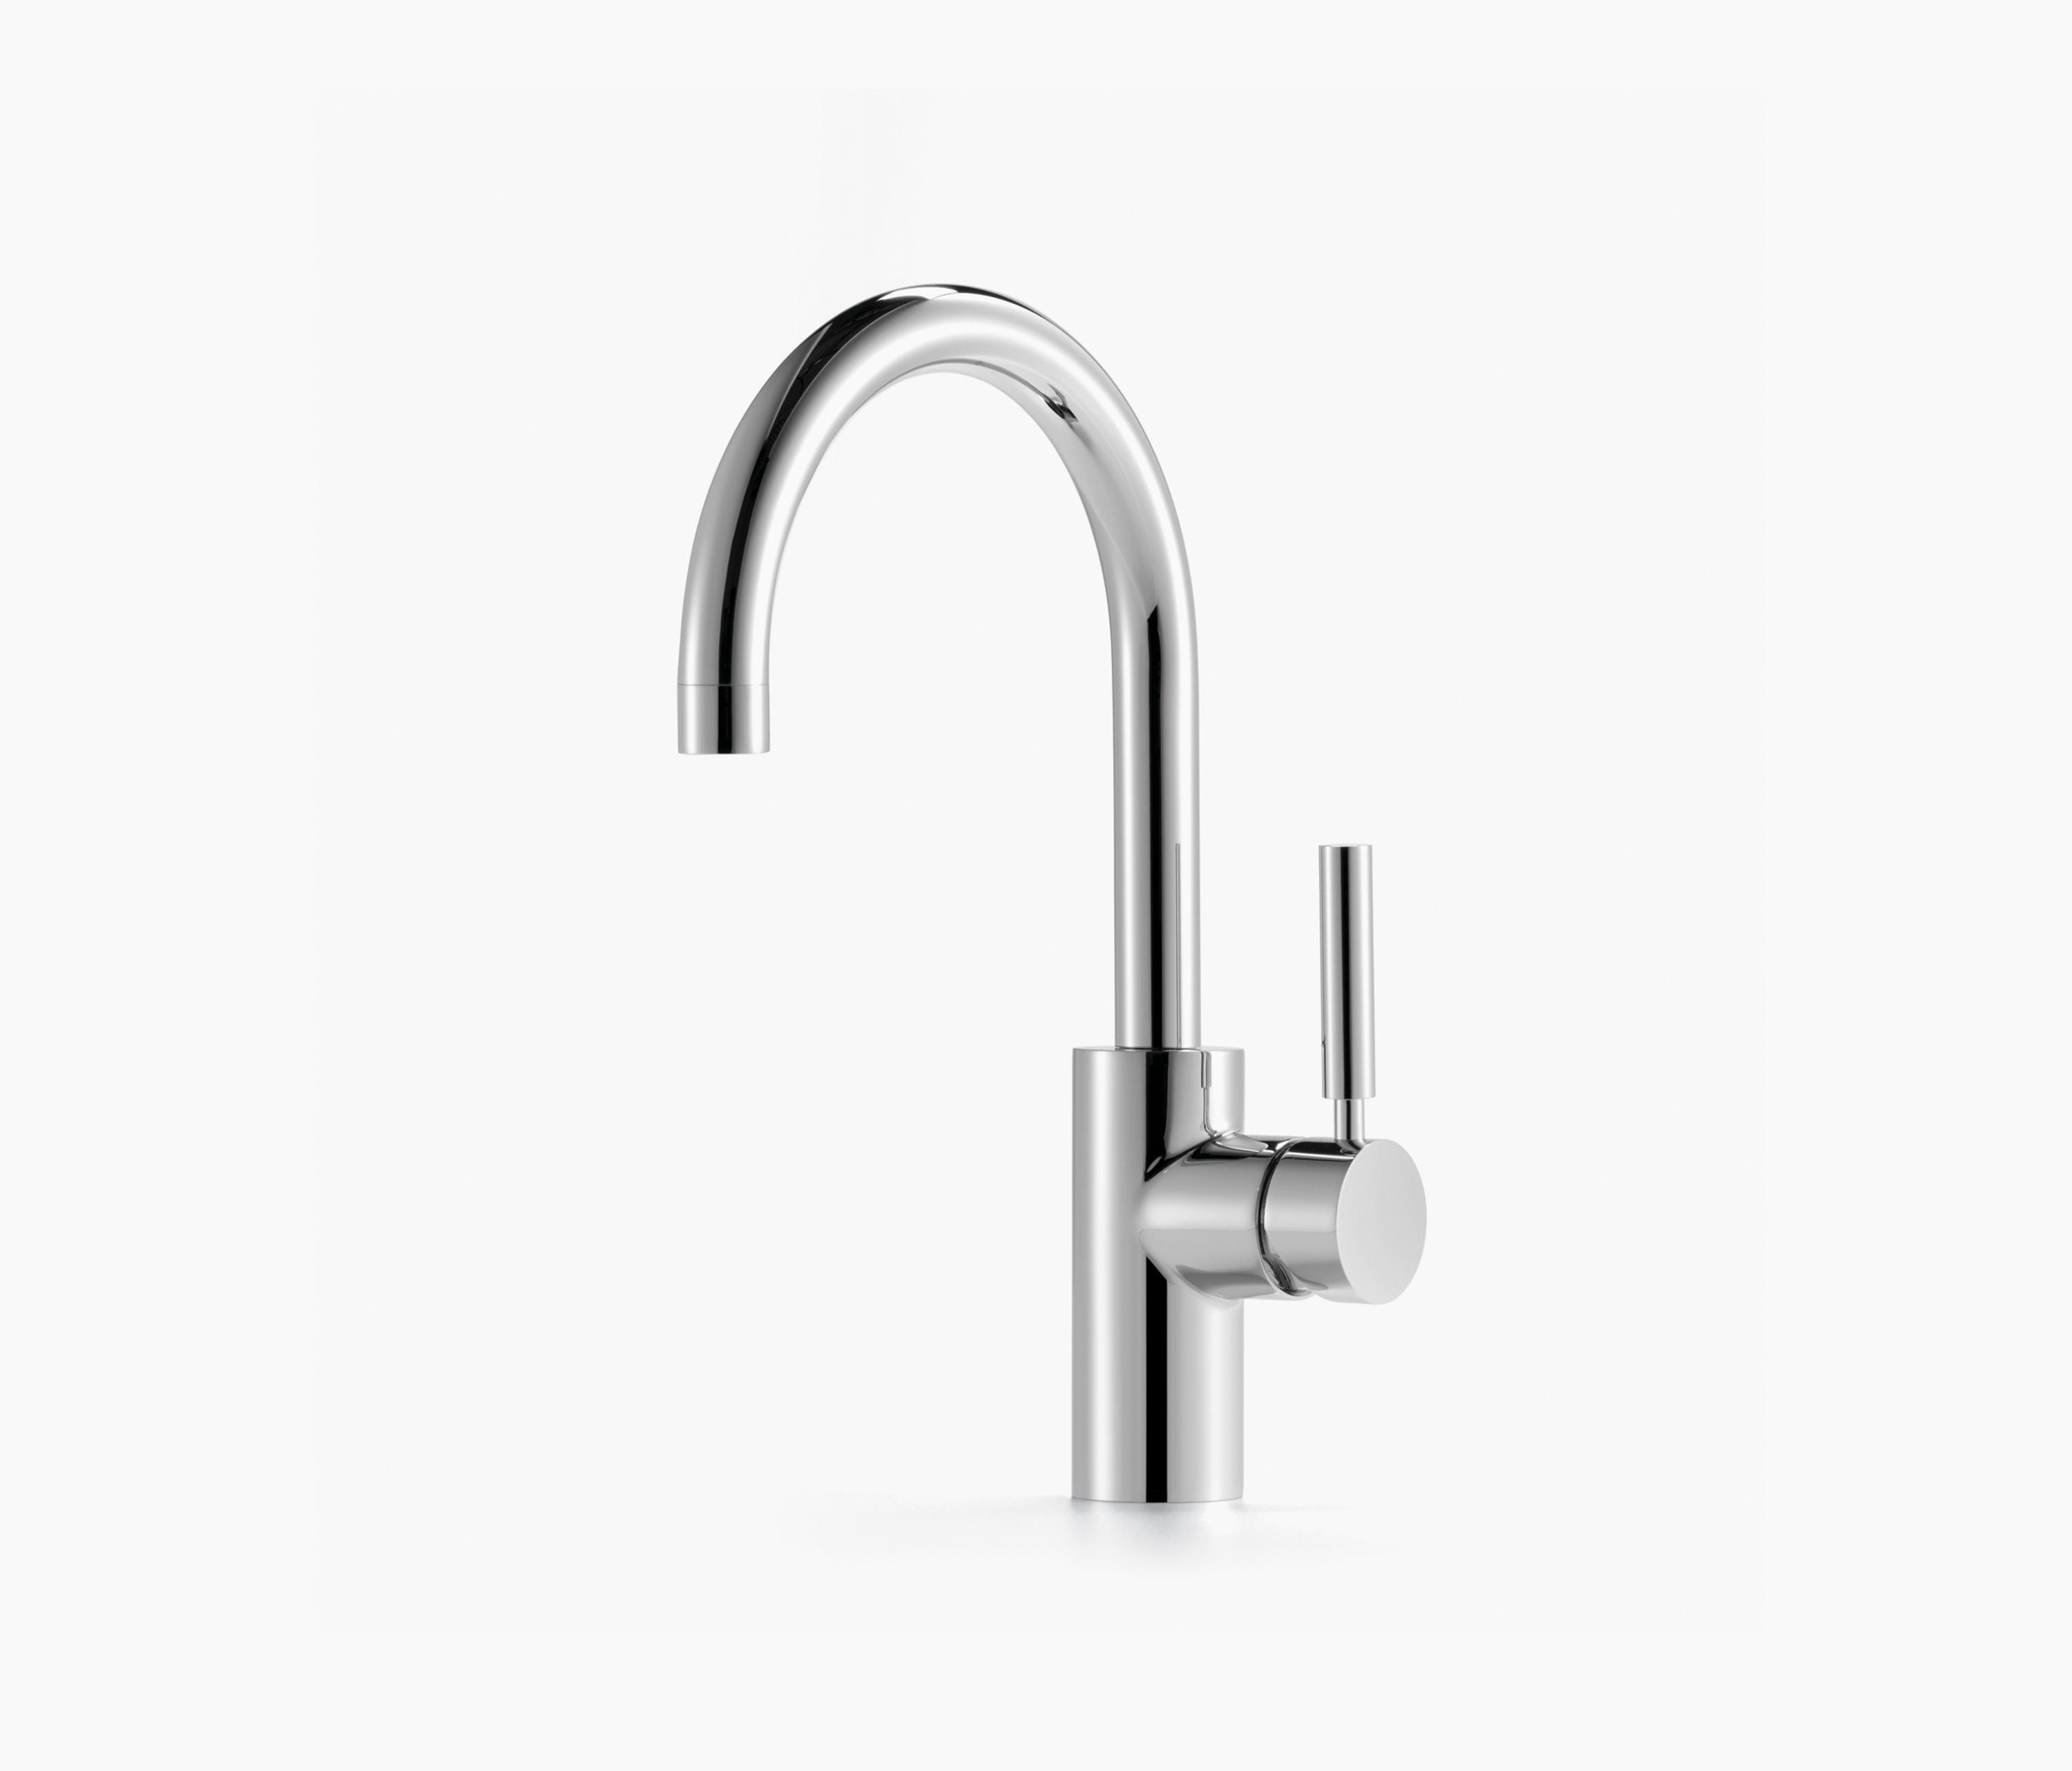 tara logic single lever basin mixer wash basin taps from dornbracht architonic. Black Bedroom Furniture Sets. Home Design Ideas